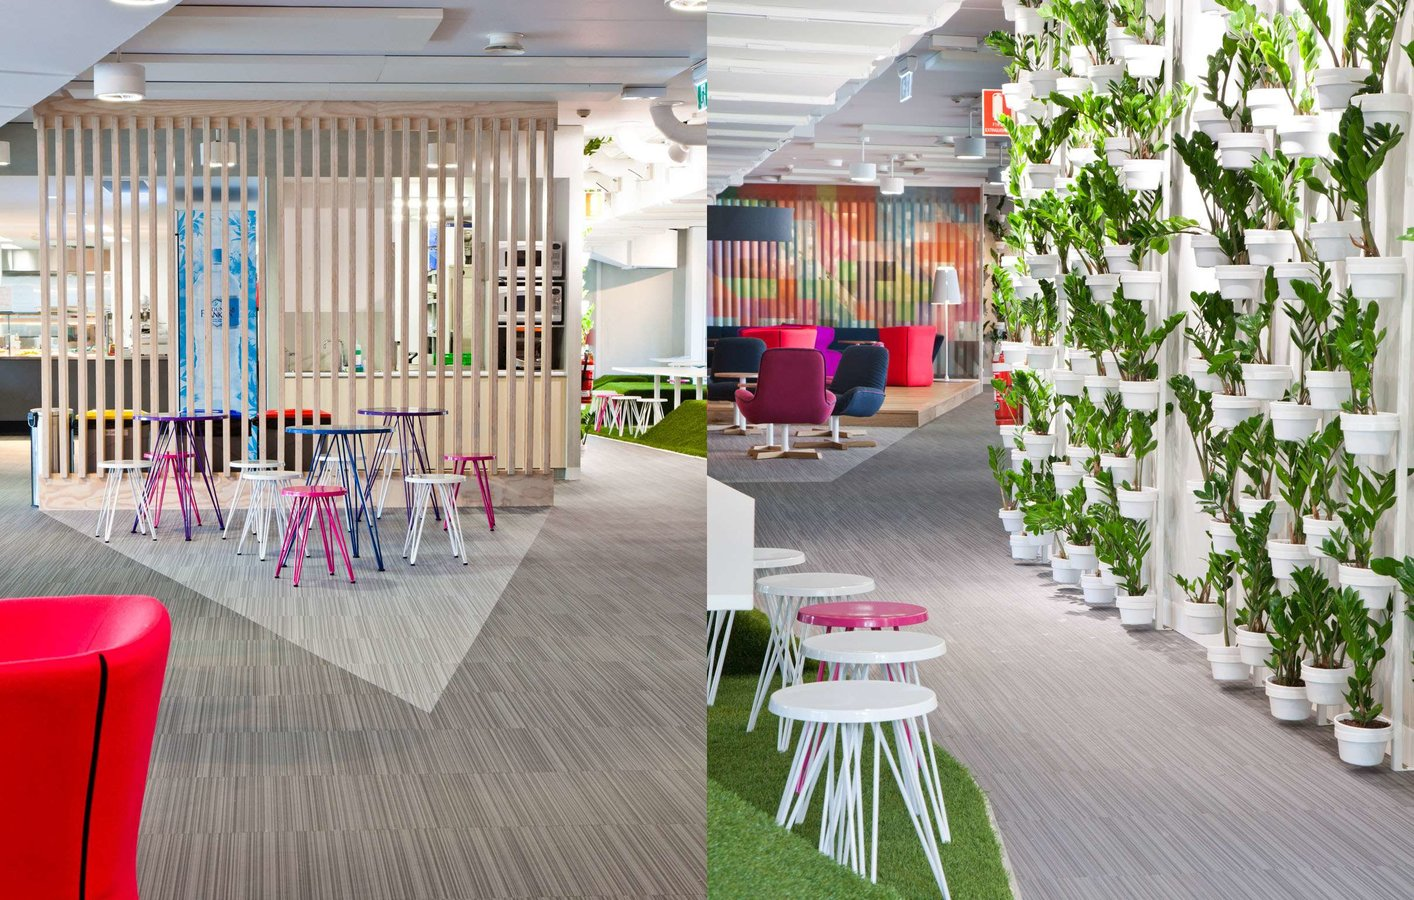 Australian office space of Yarra Valley Water features different flooring designs from Bolon